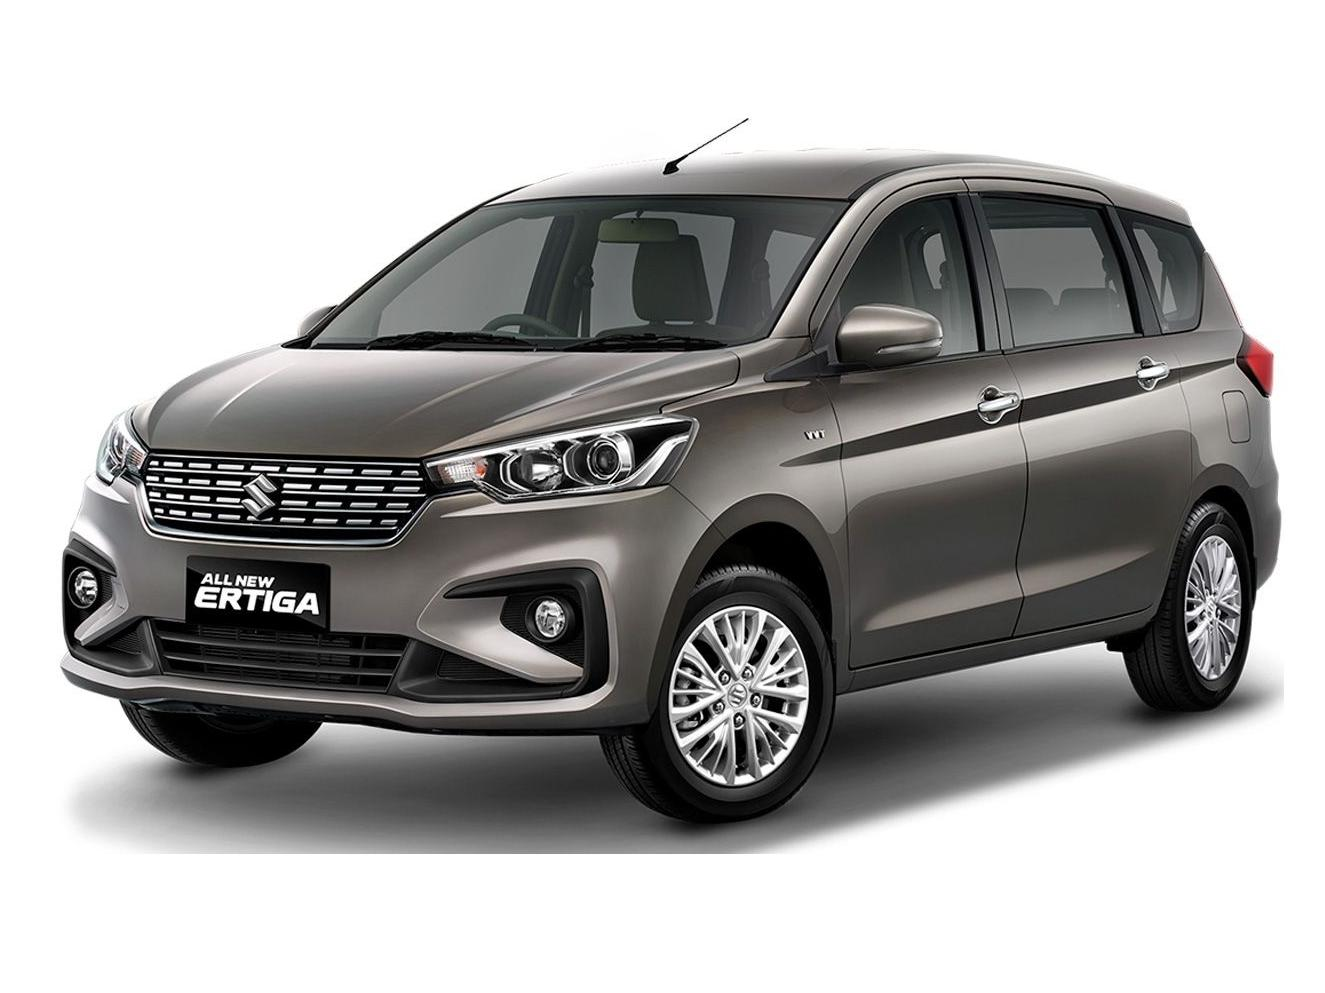 Upcoming New Ertiga will be the next Electric Car of Suzuki